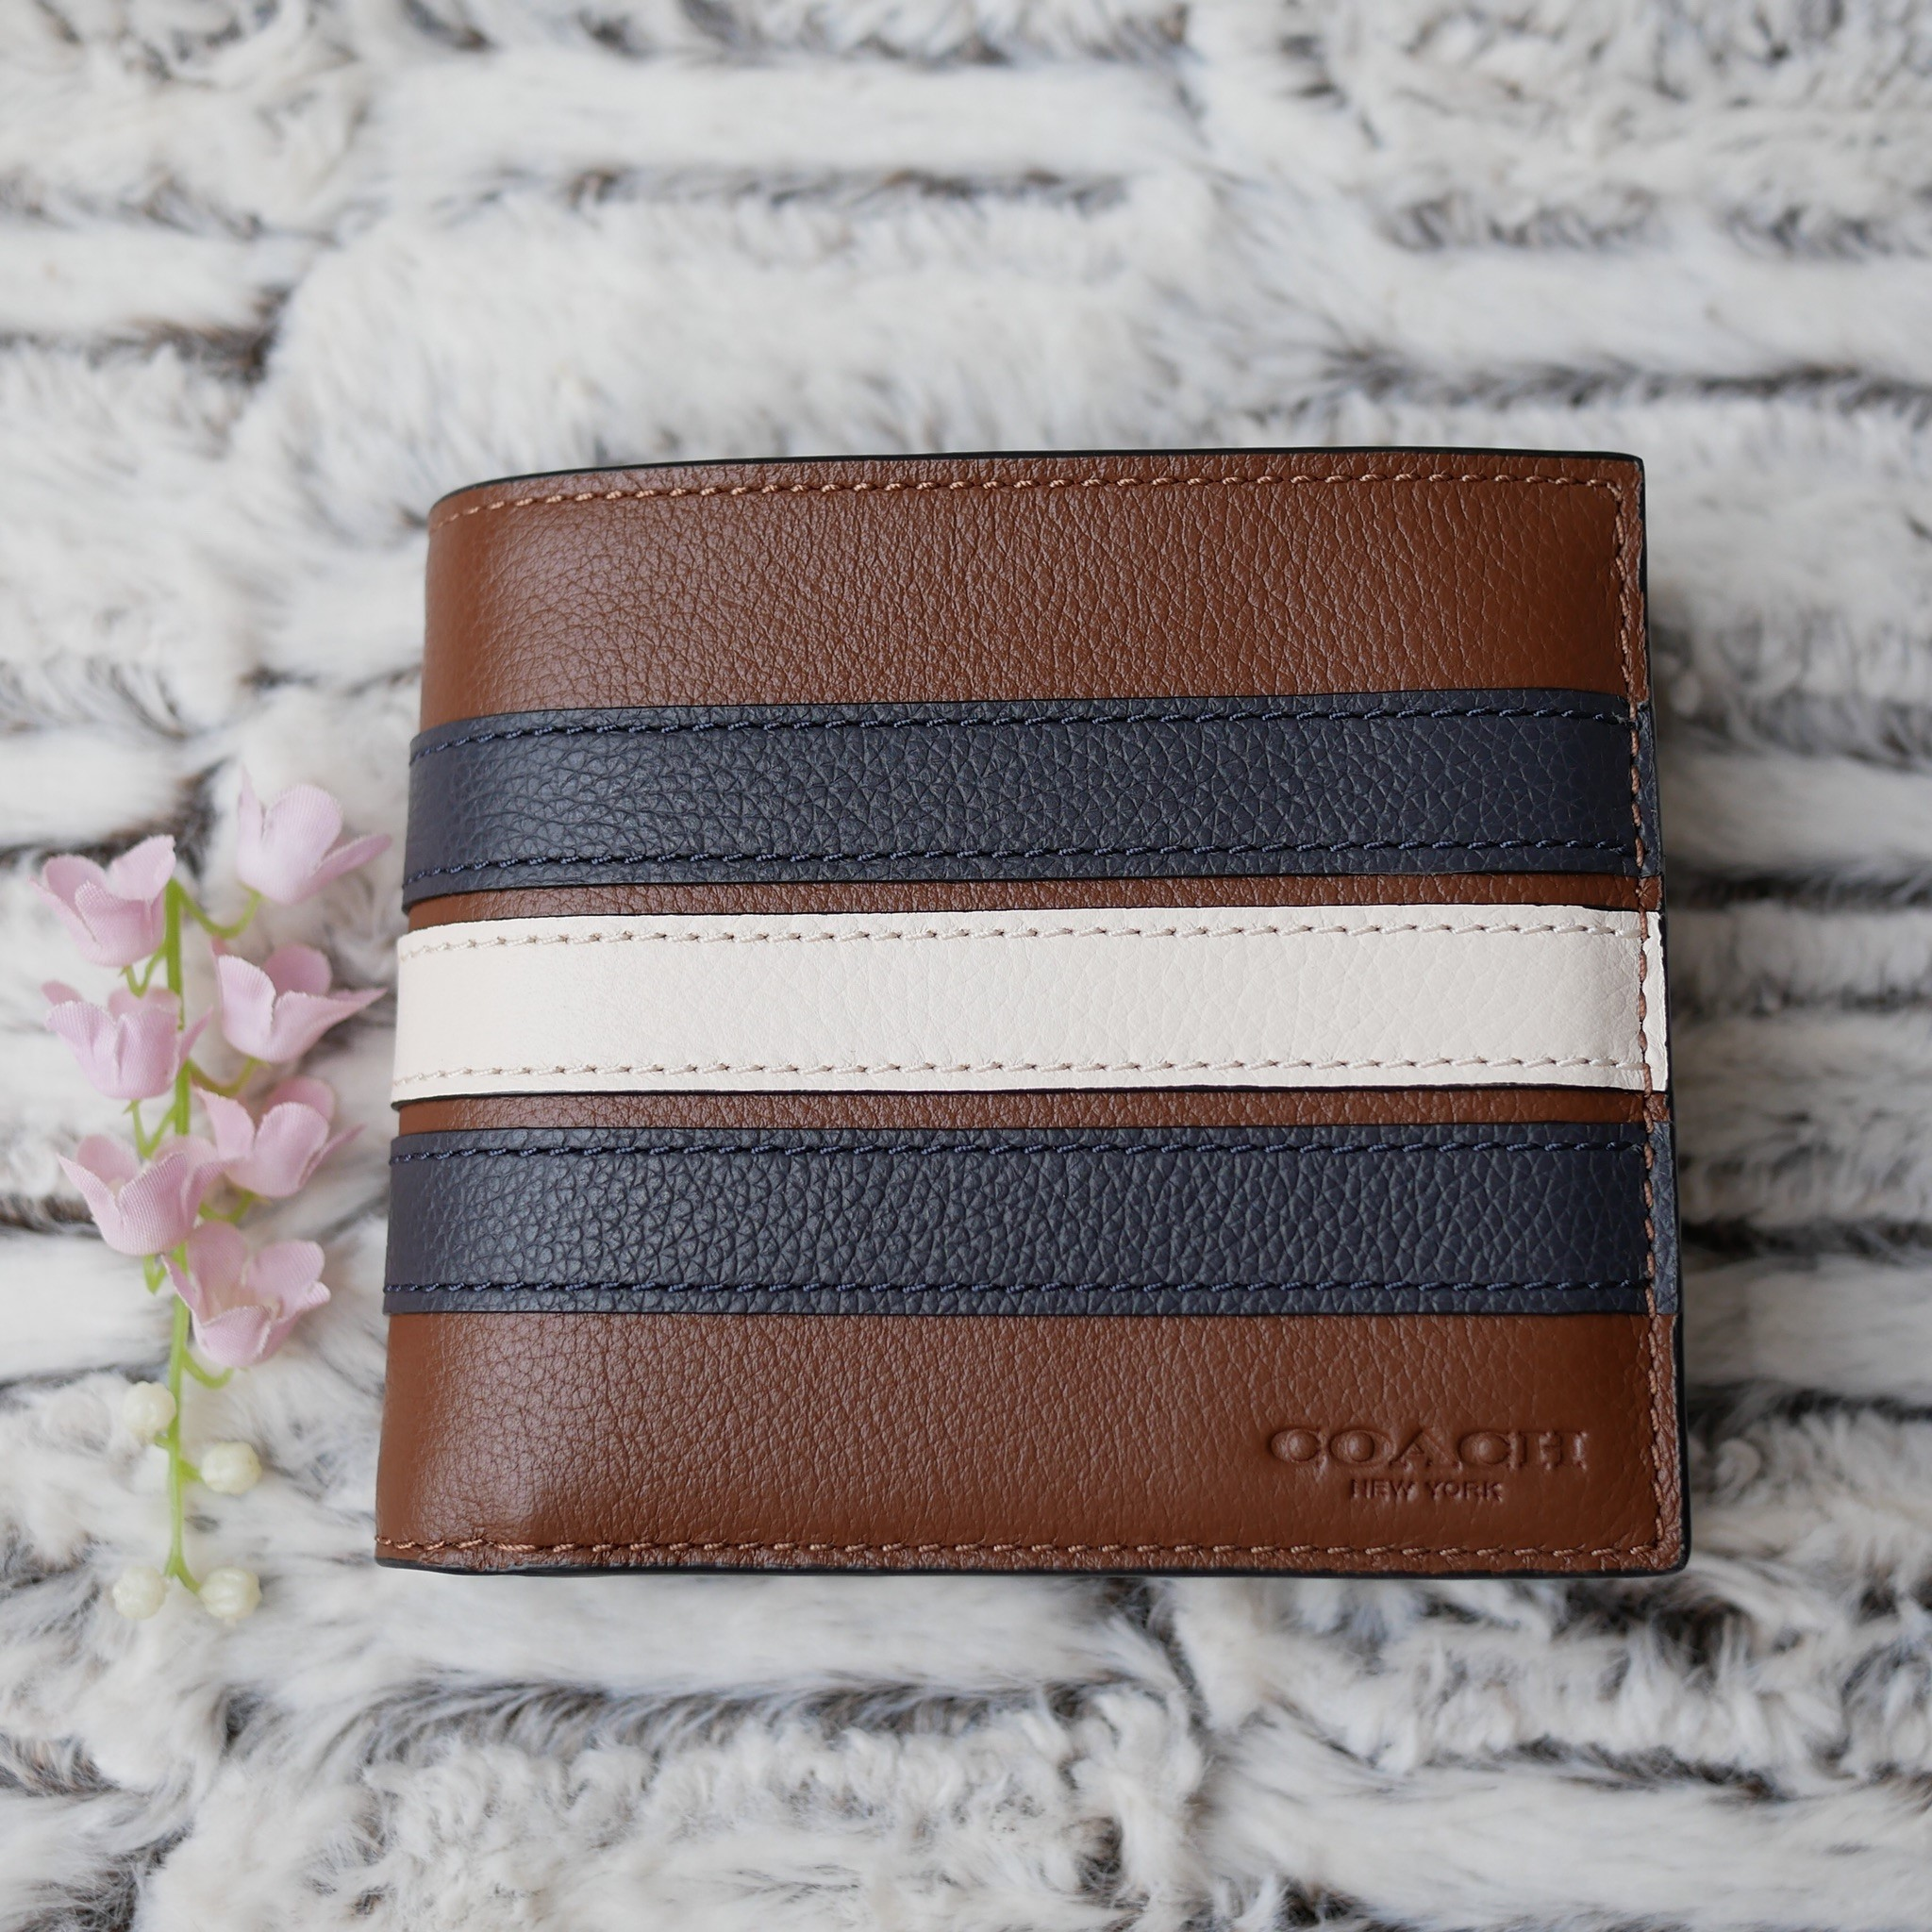 f926a99fa971 3-IN-1 WALLET WITH VARSITY STRIPE (COACH F24649) - Little costume ...